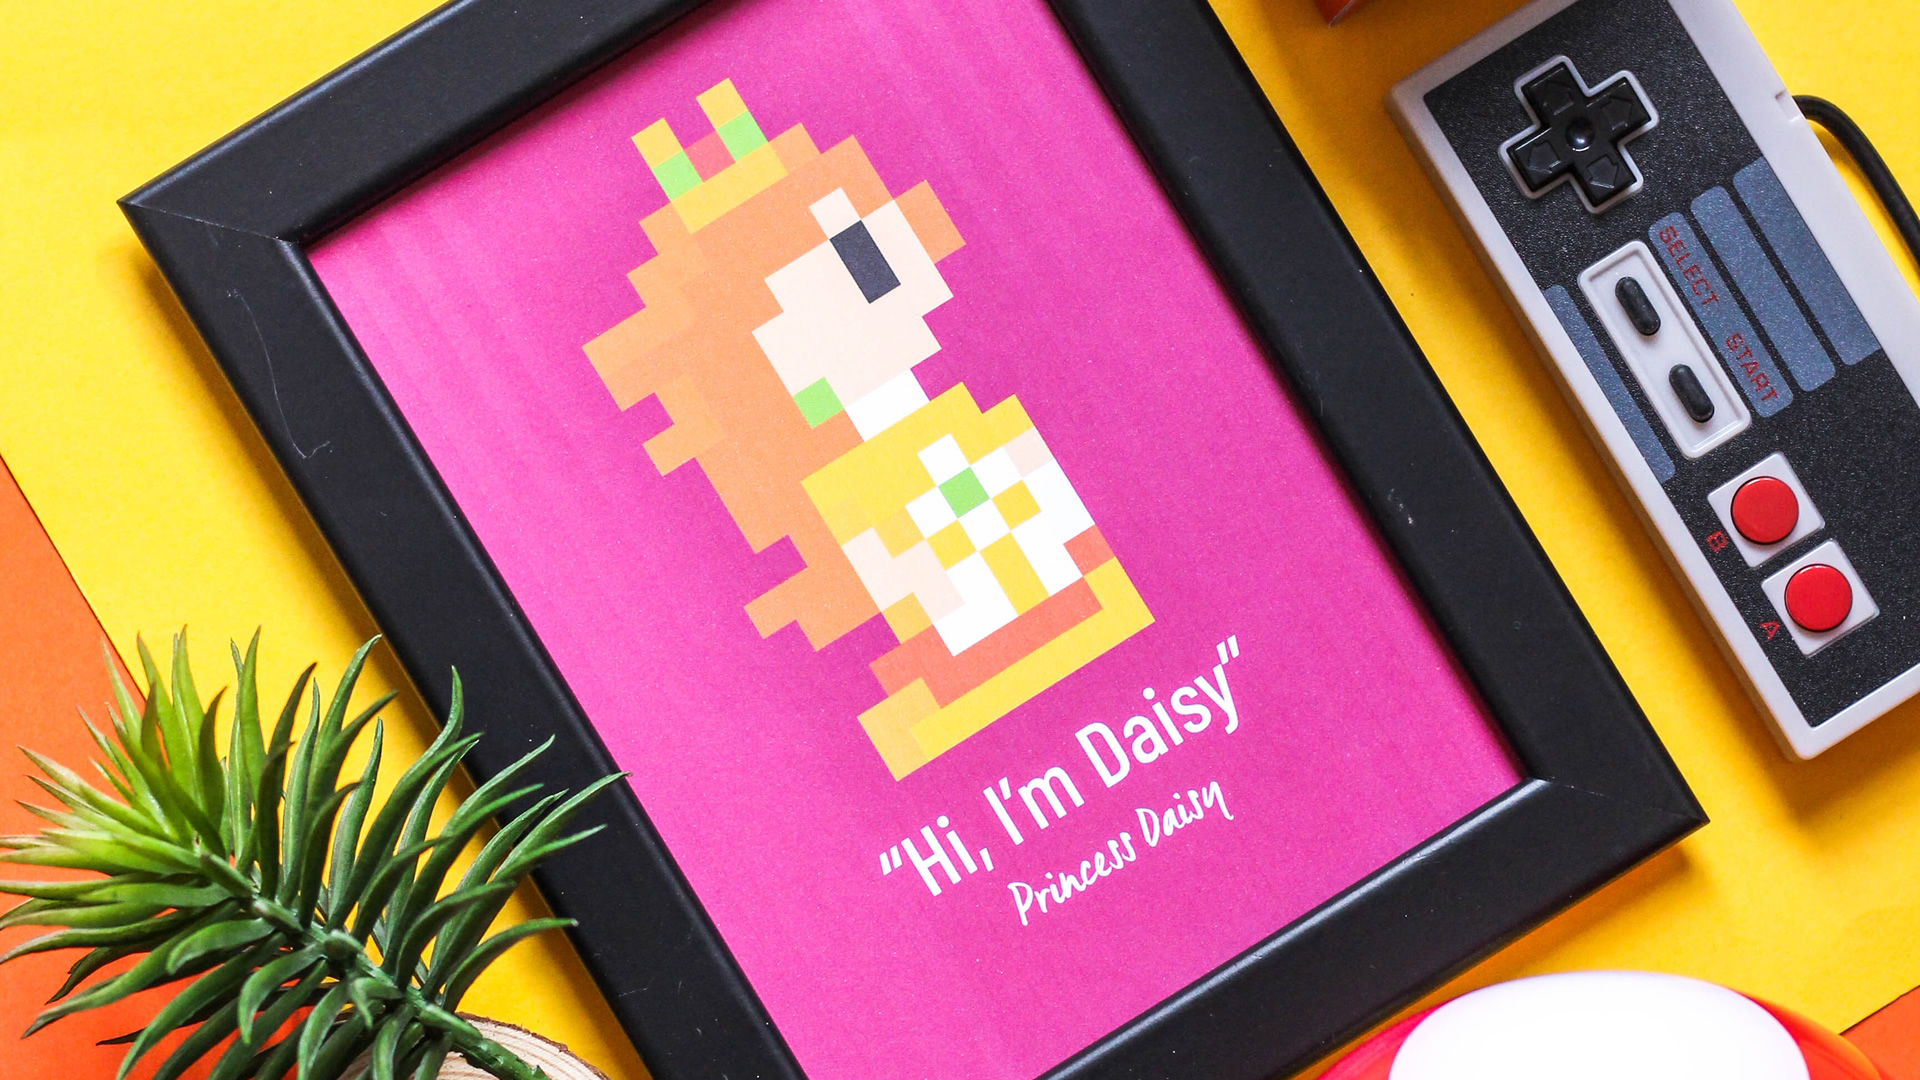 5 Awesome Princess Daisy Facts